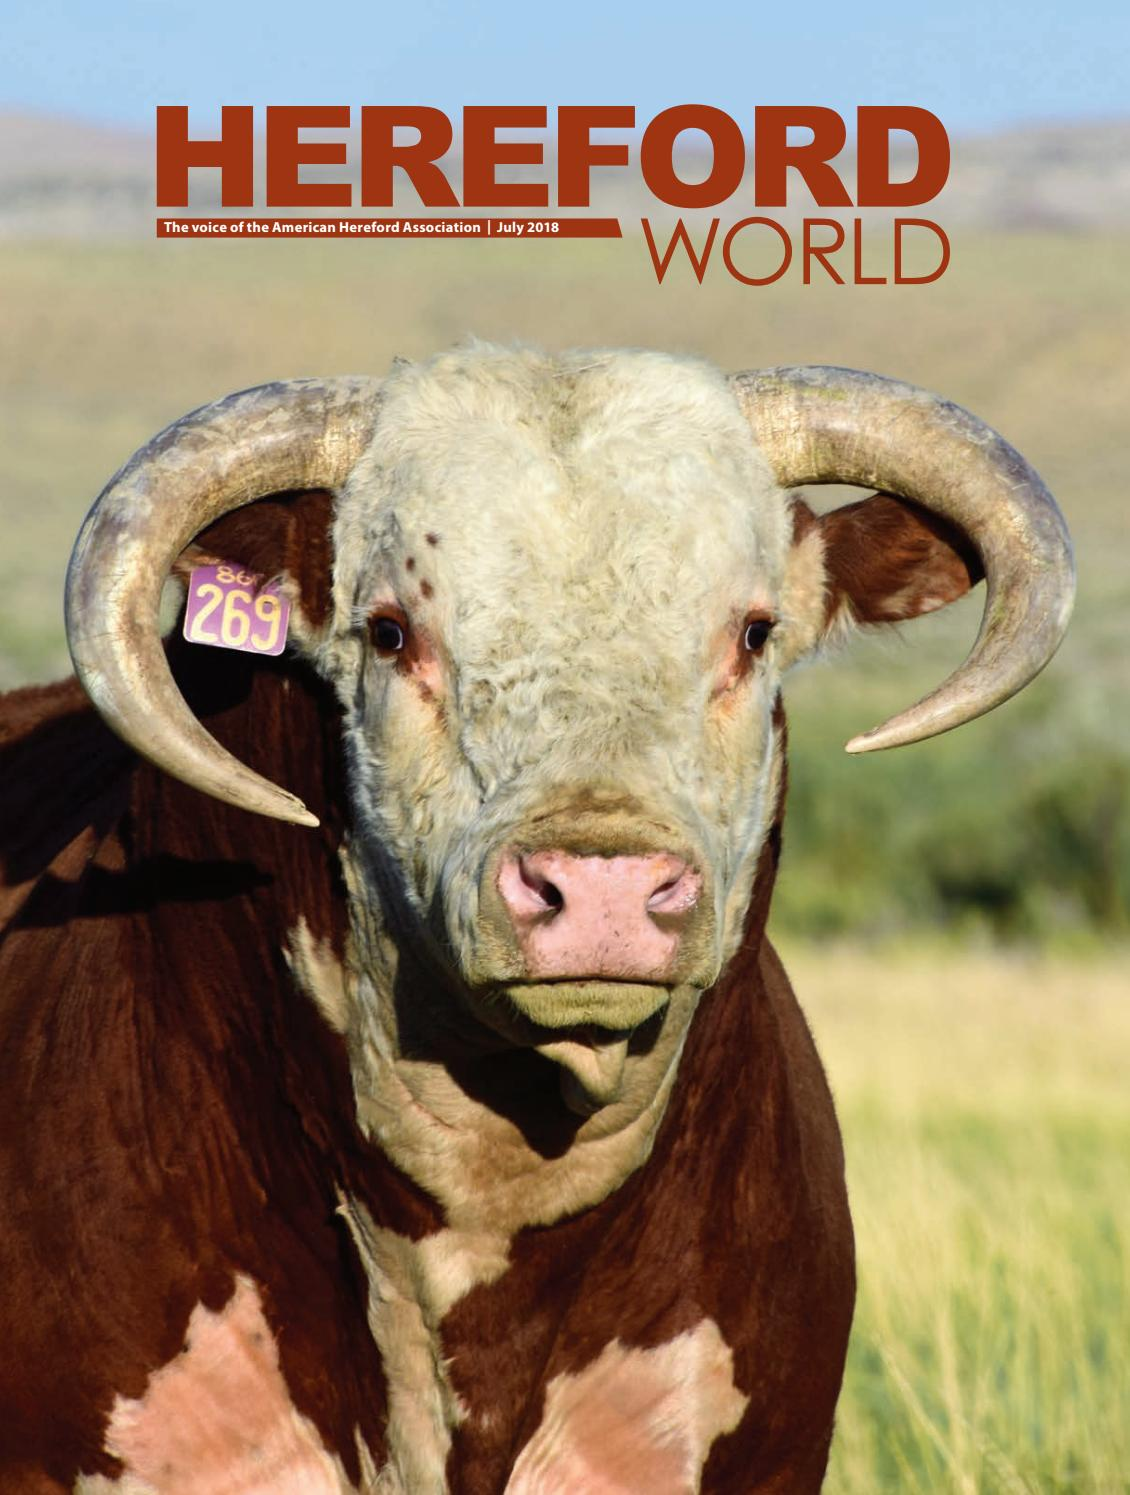 85f2f1283 July 2018 Hereford World by American Hereford Association and Hereford  World - issuu